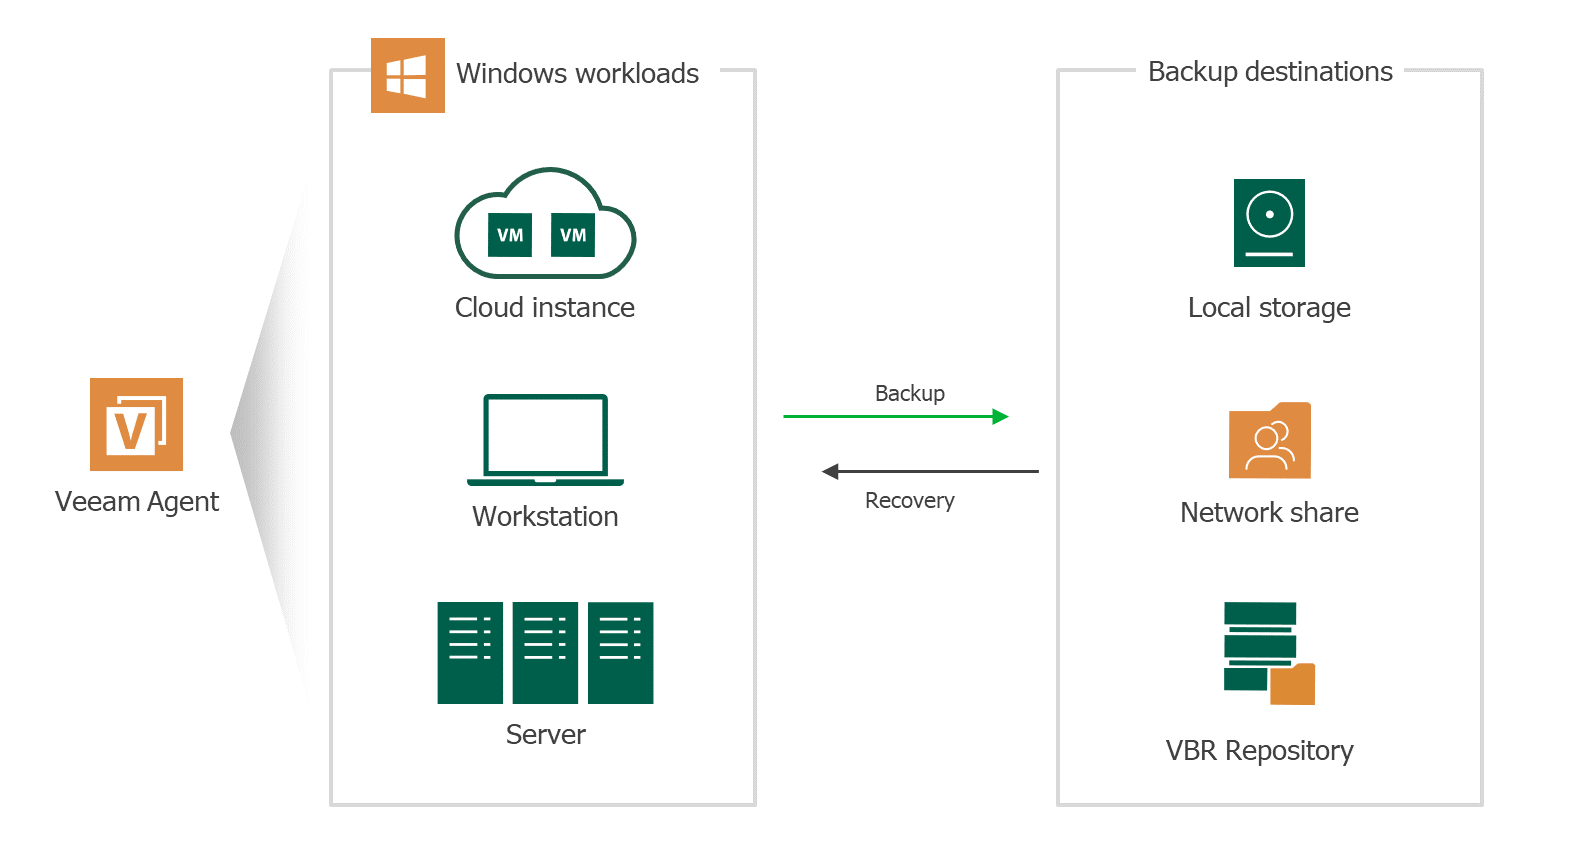 Free Windows Backup for Endpoint, Server and Desktop - Veeam